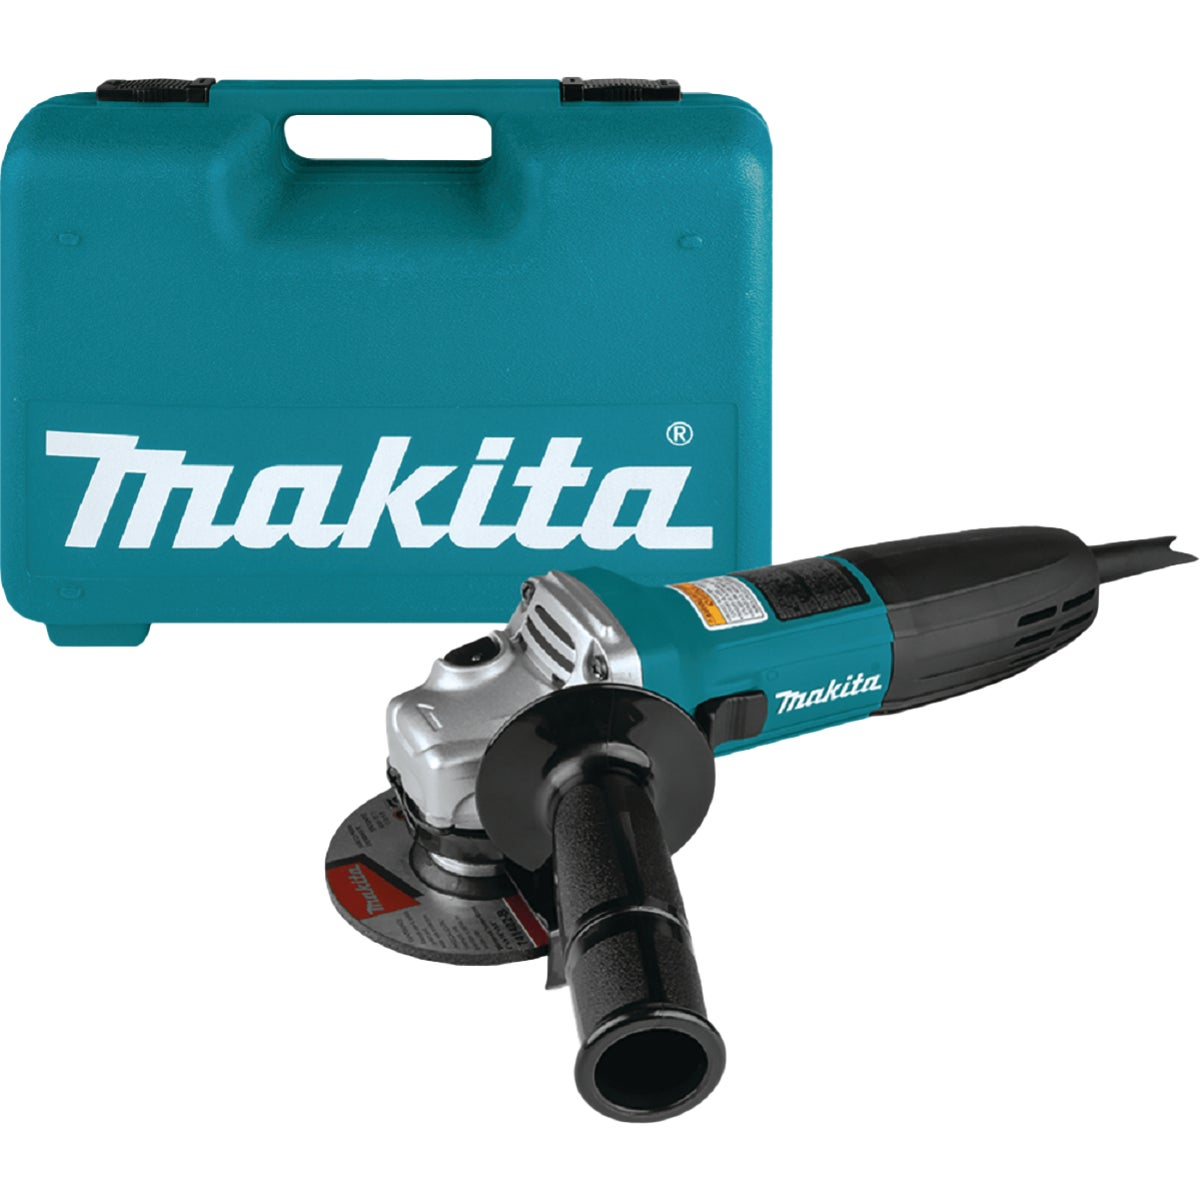 "4"" ANGLE GRINDER - GA4030K by Makita Usa Inc"